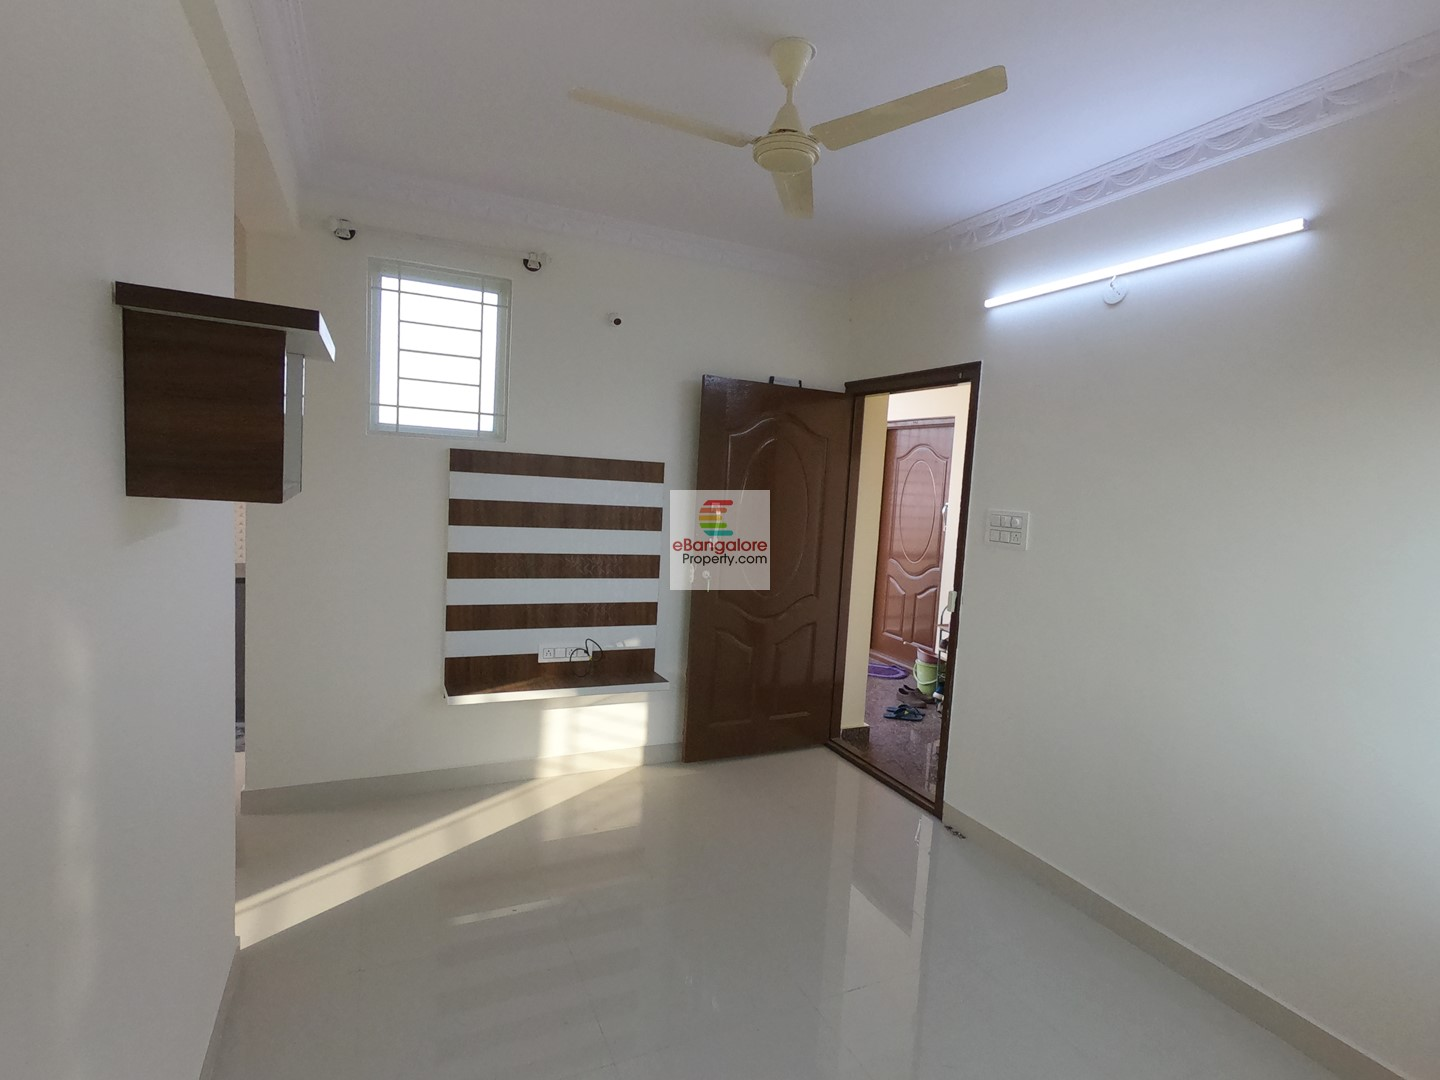 BTM Layout Extension – 11 Unit Rental Income Building For Sale – Completely Occupied